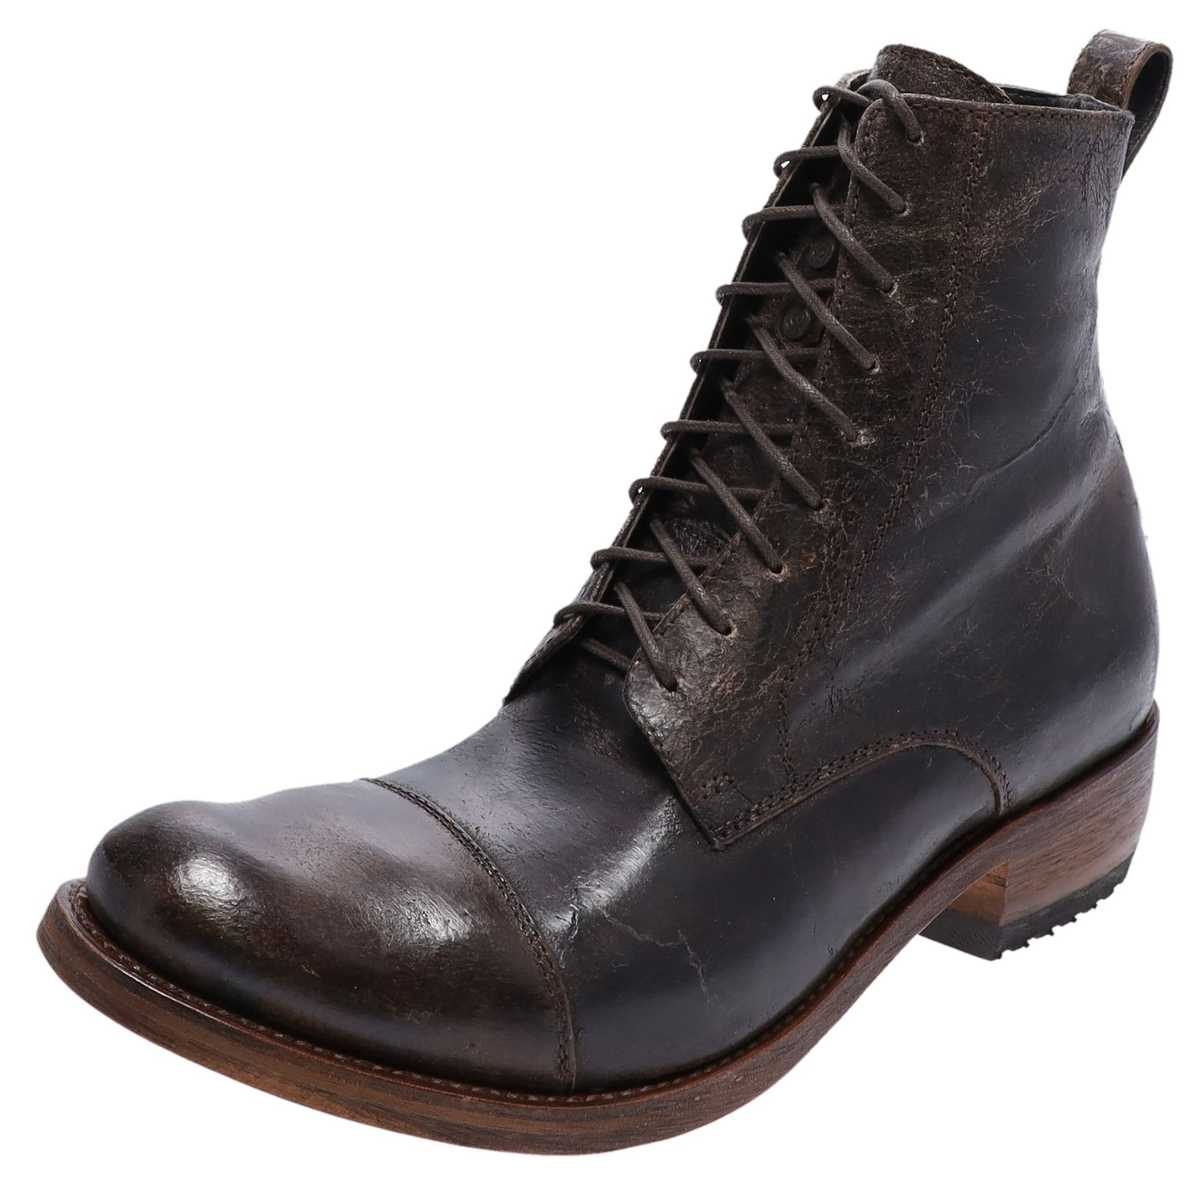 Sendra Boots 7472  Quercia Fashion laced ankle boot - Brown